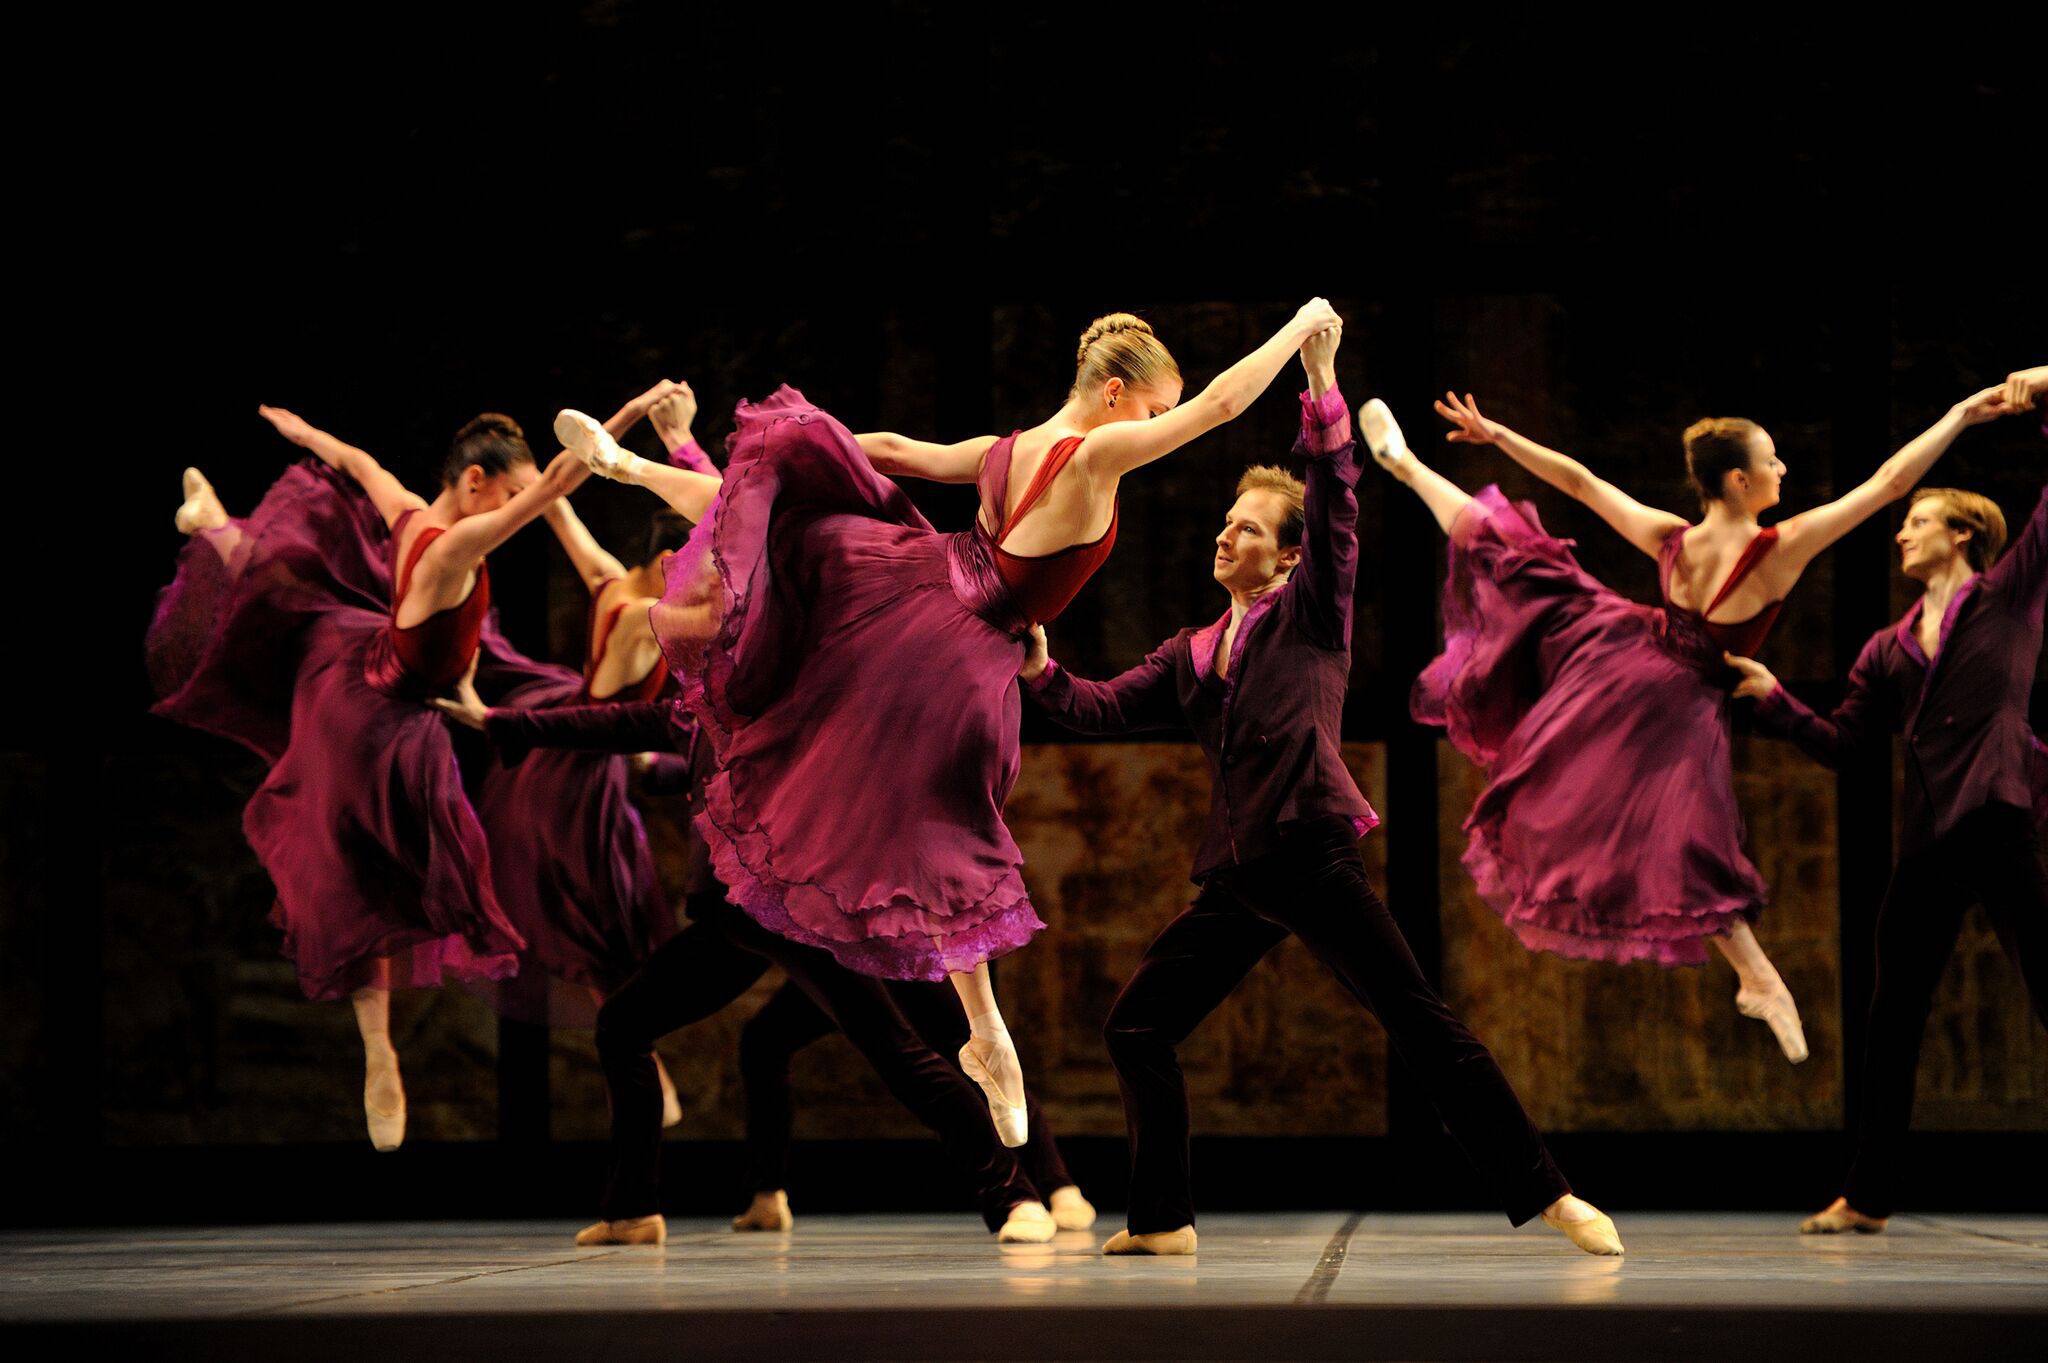 The San Francisco Ballet